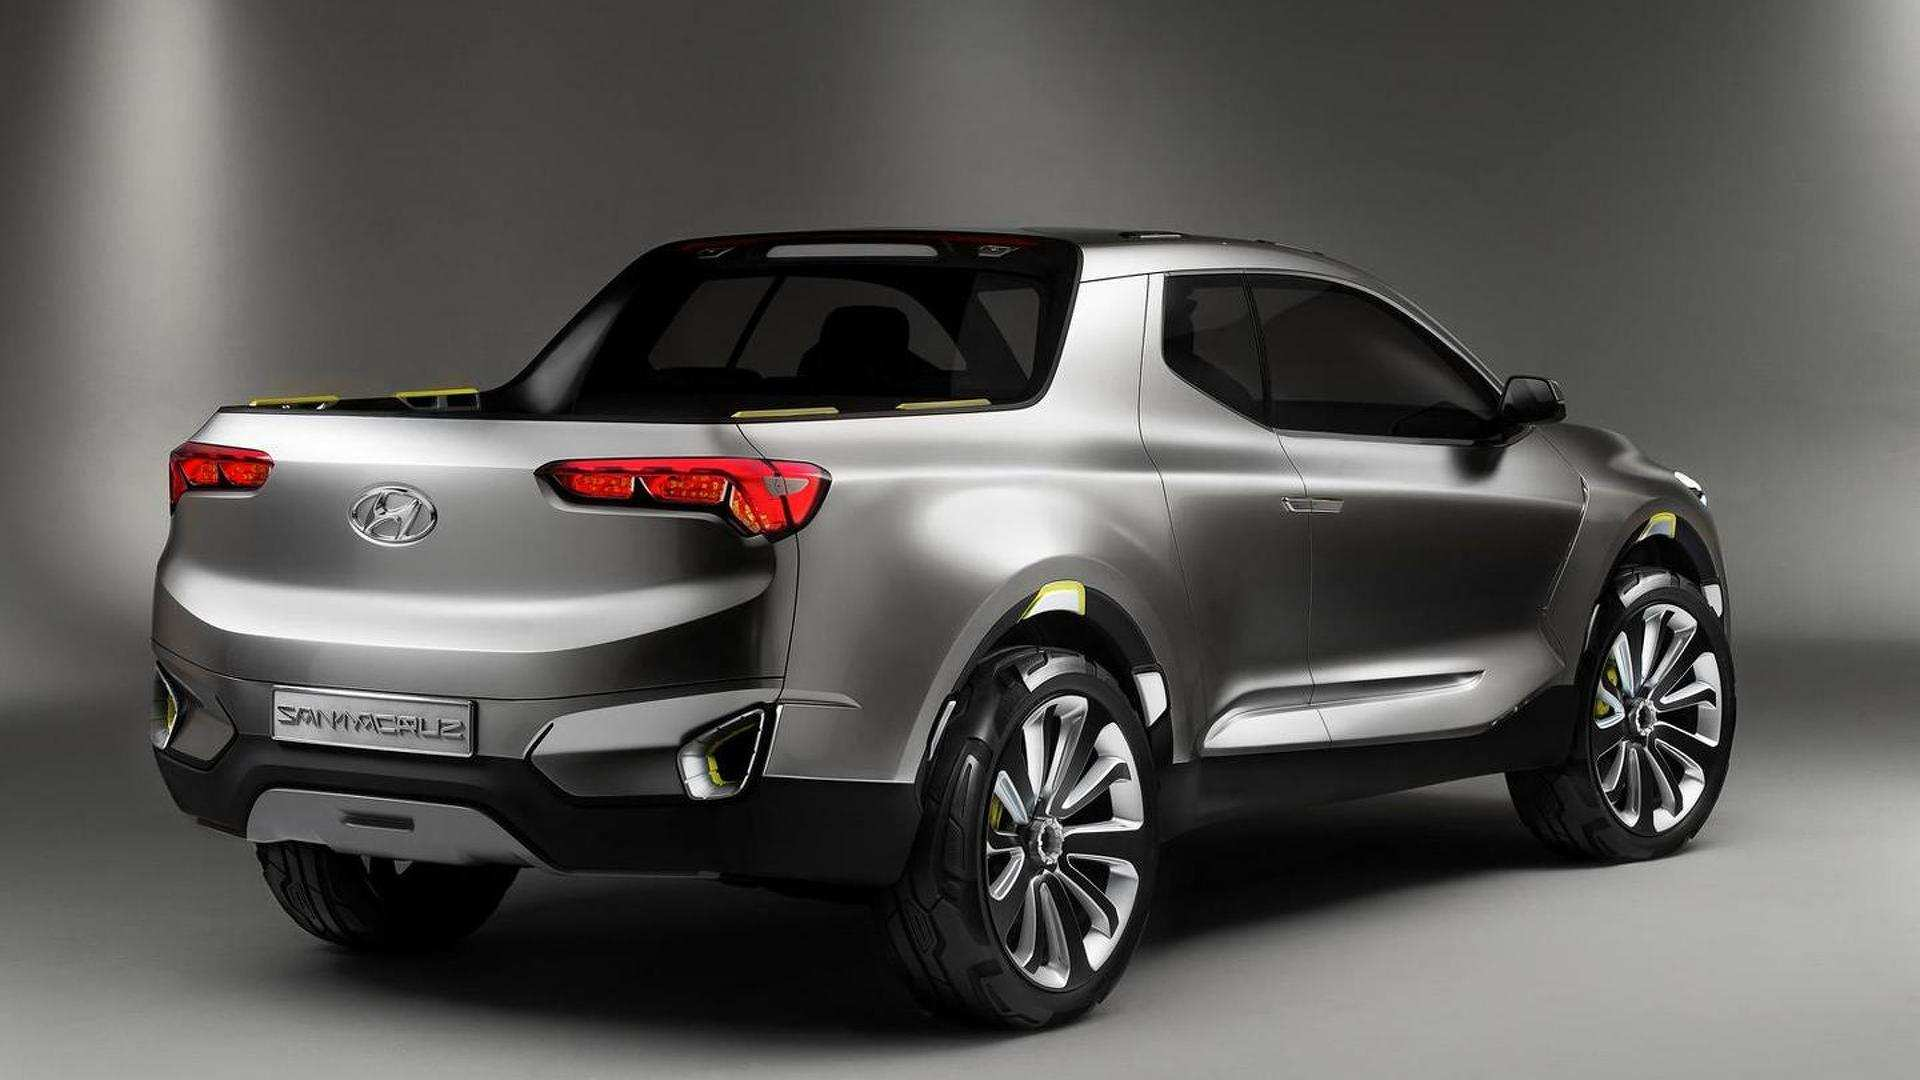 60 Best Review Kia Pickup 2020 Model with Kia Pickup 2020